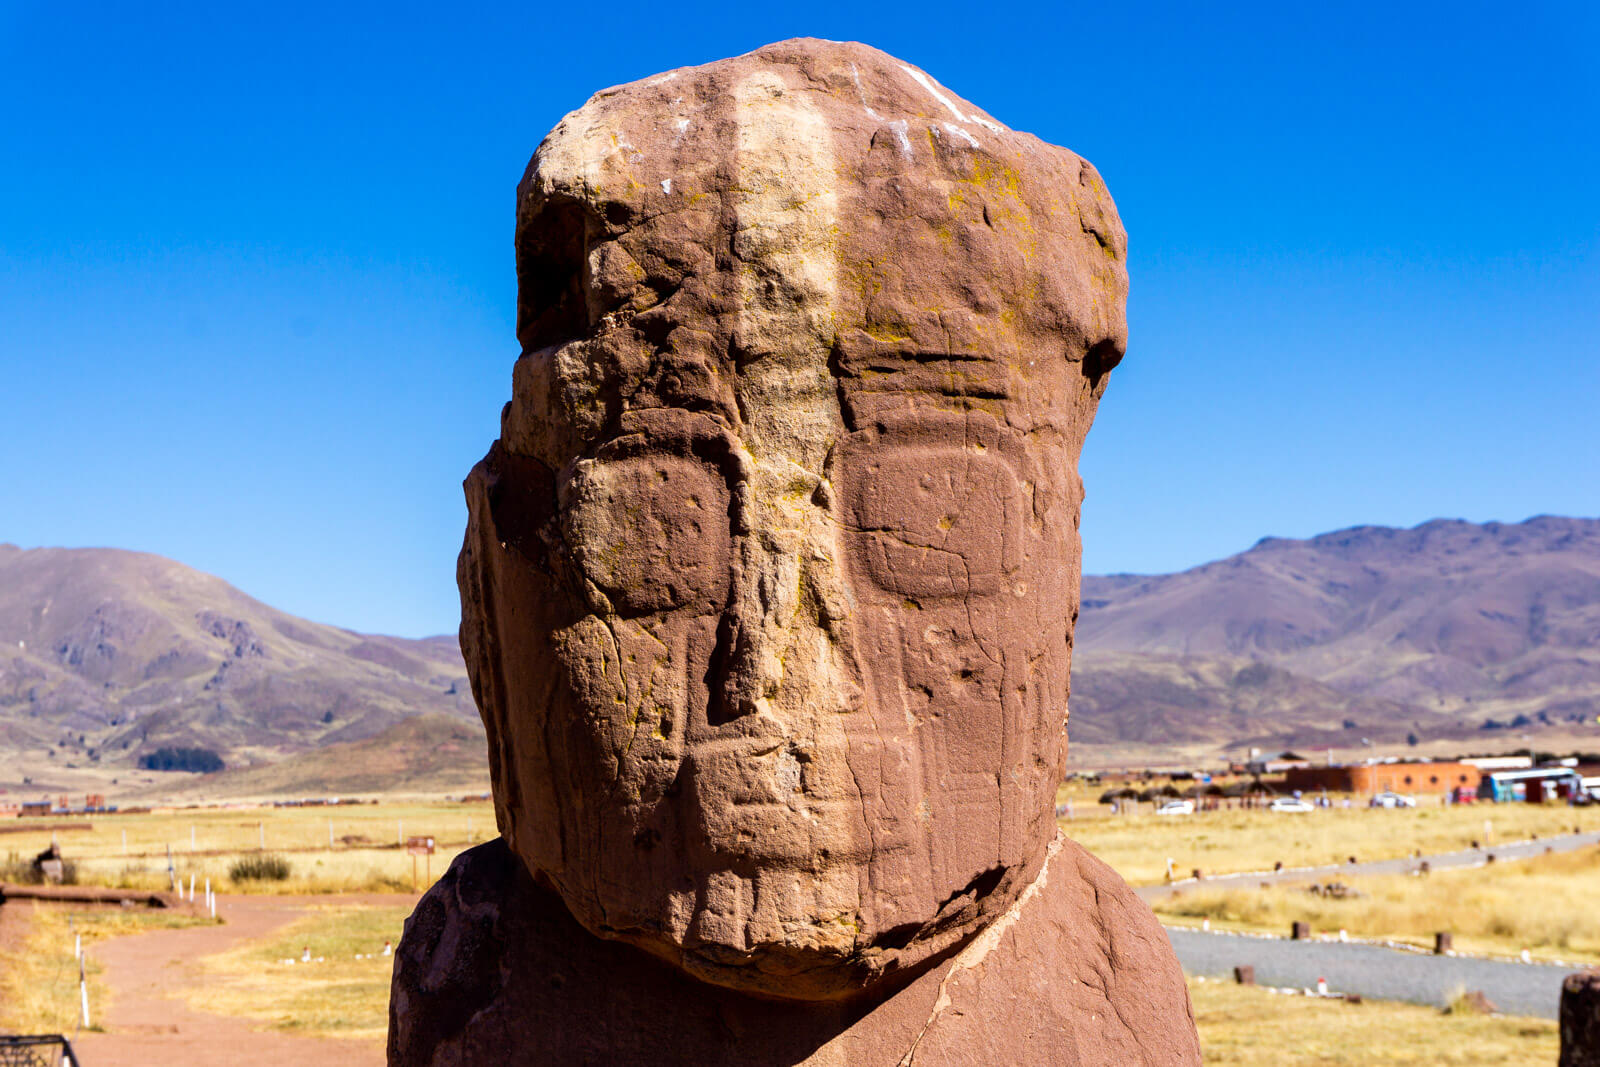 The details of the face of the Fraile Monolith in Tiwanaku Ruins